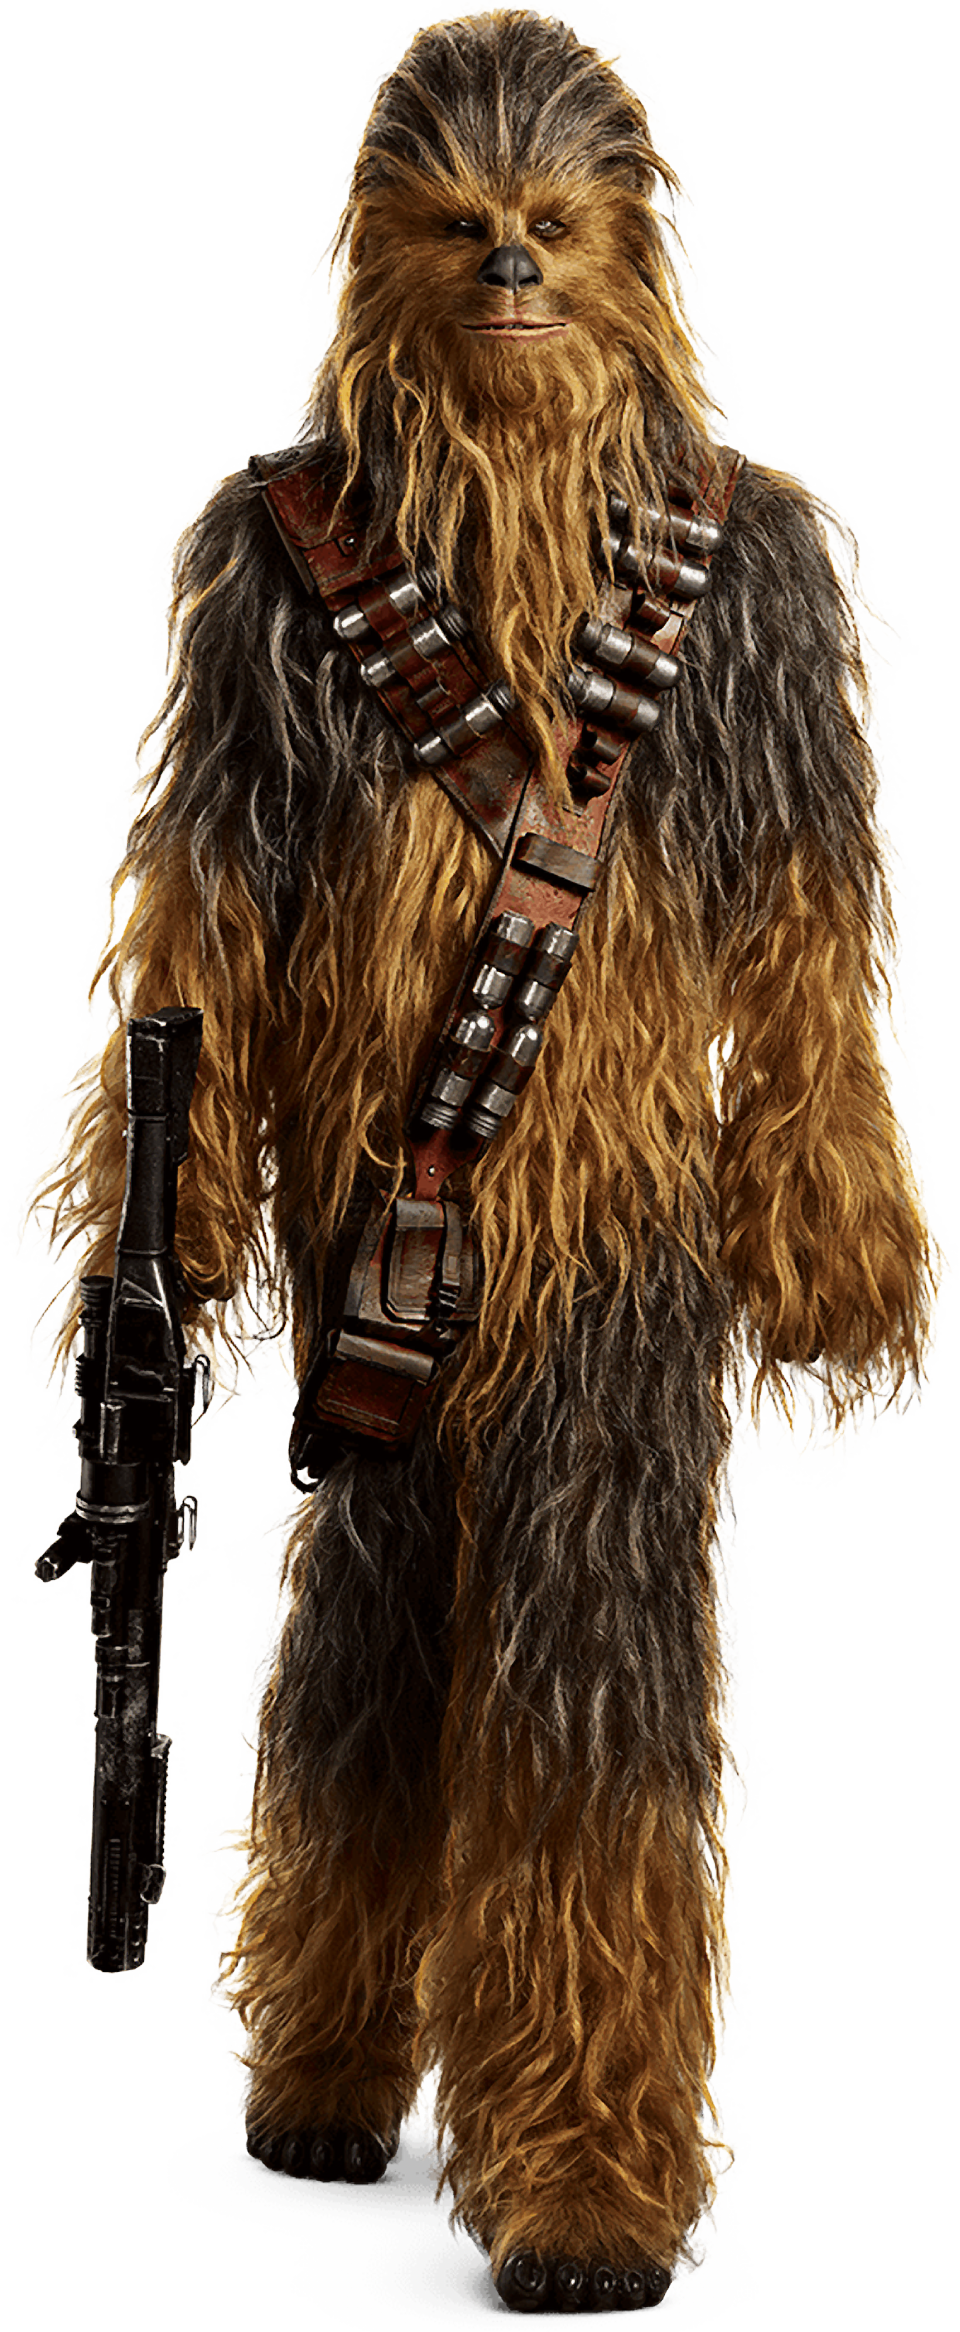 Png image transparent background. Characters of solo a